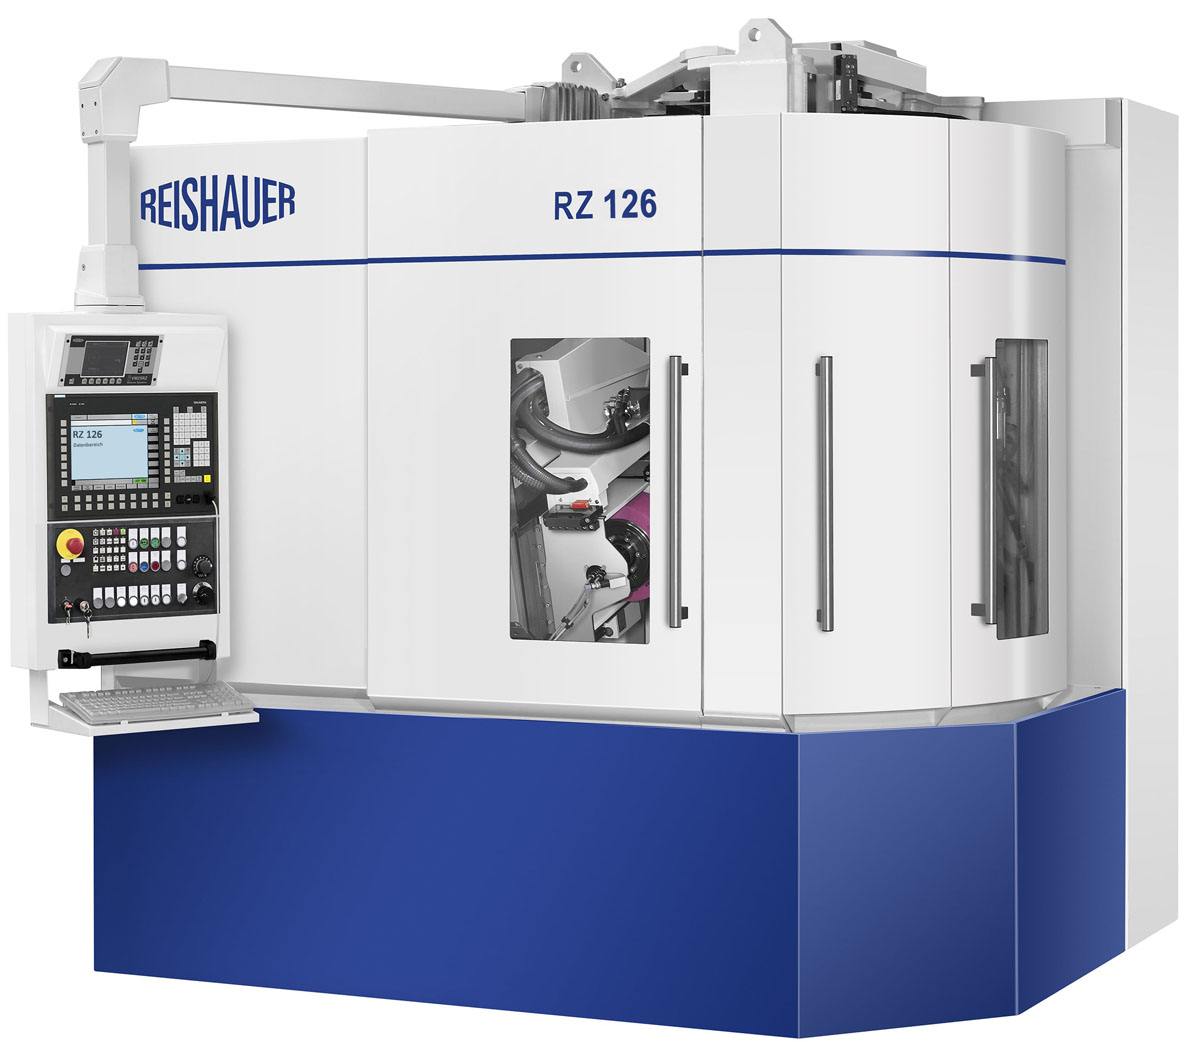 RZ 126 Manufacturing planetary pinions with grinding speeds up to 100 m/s